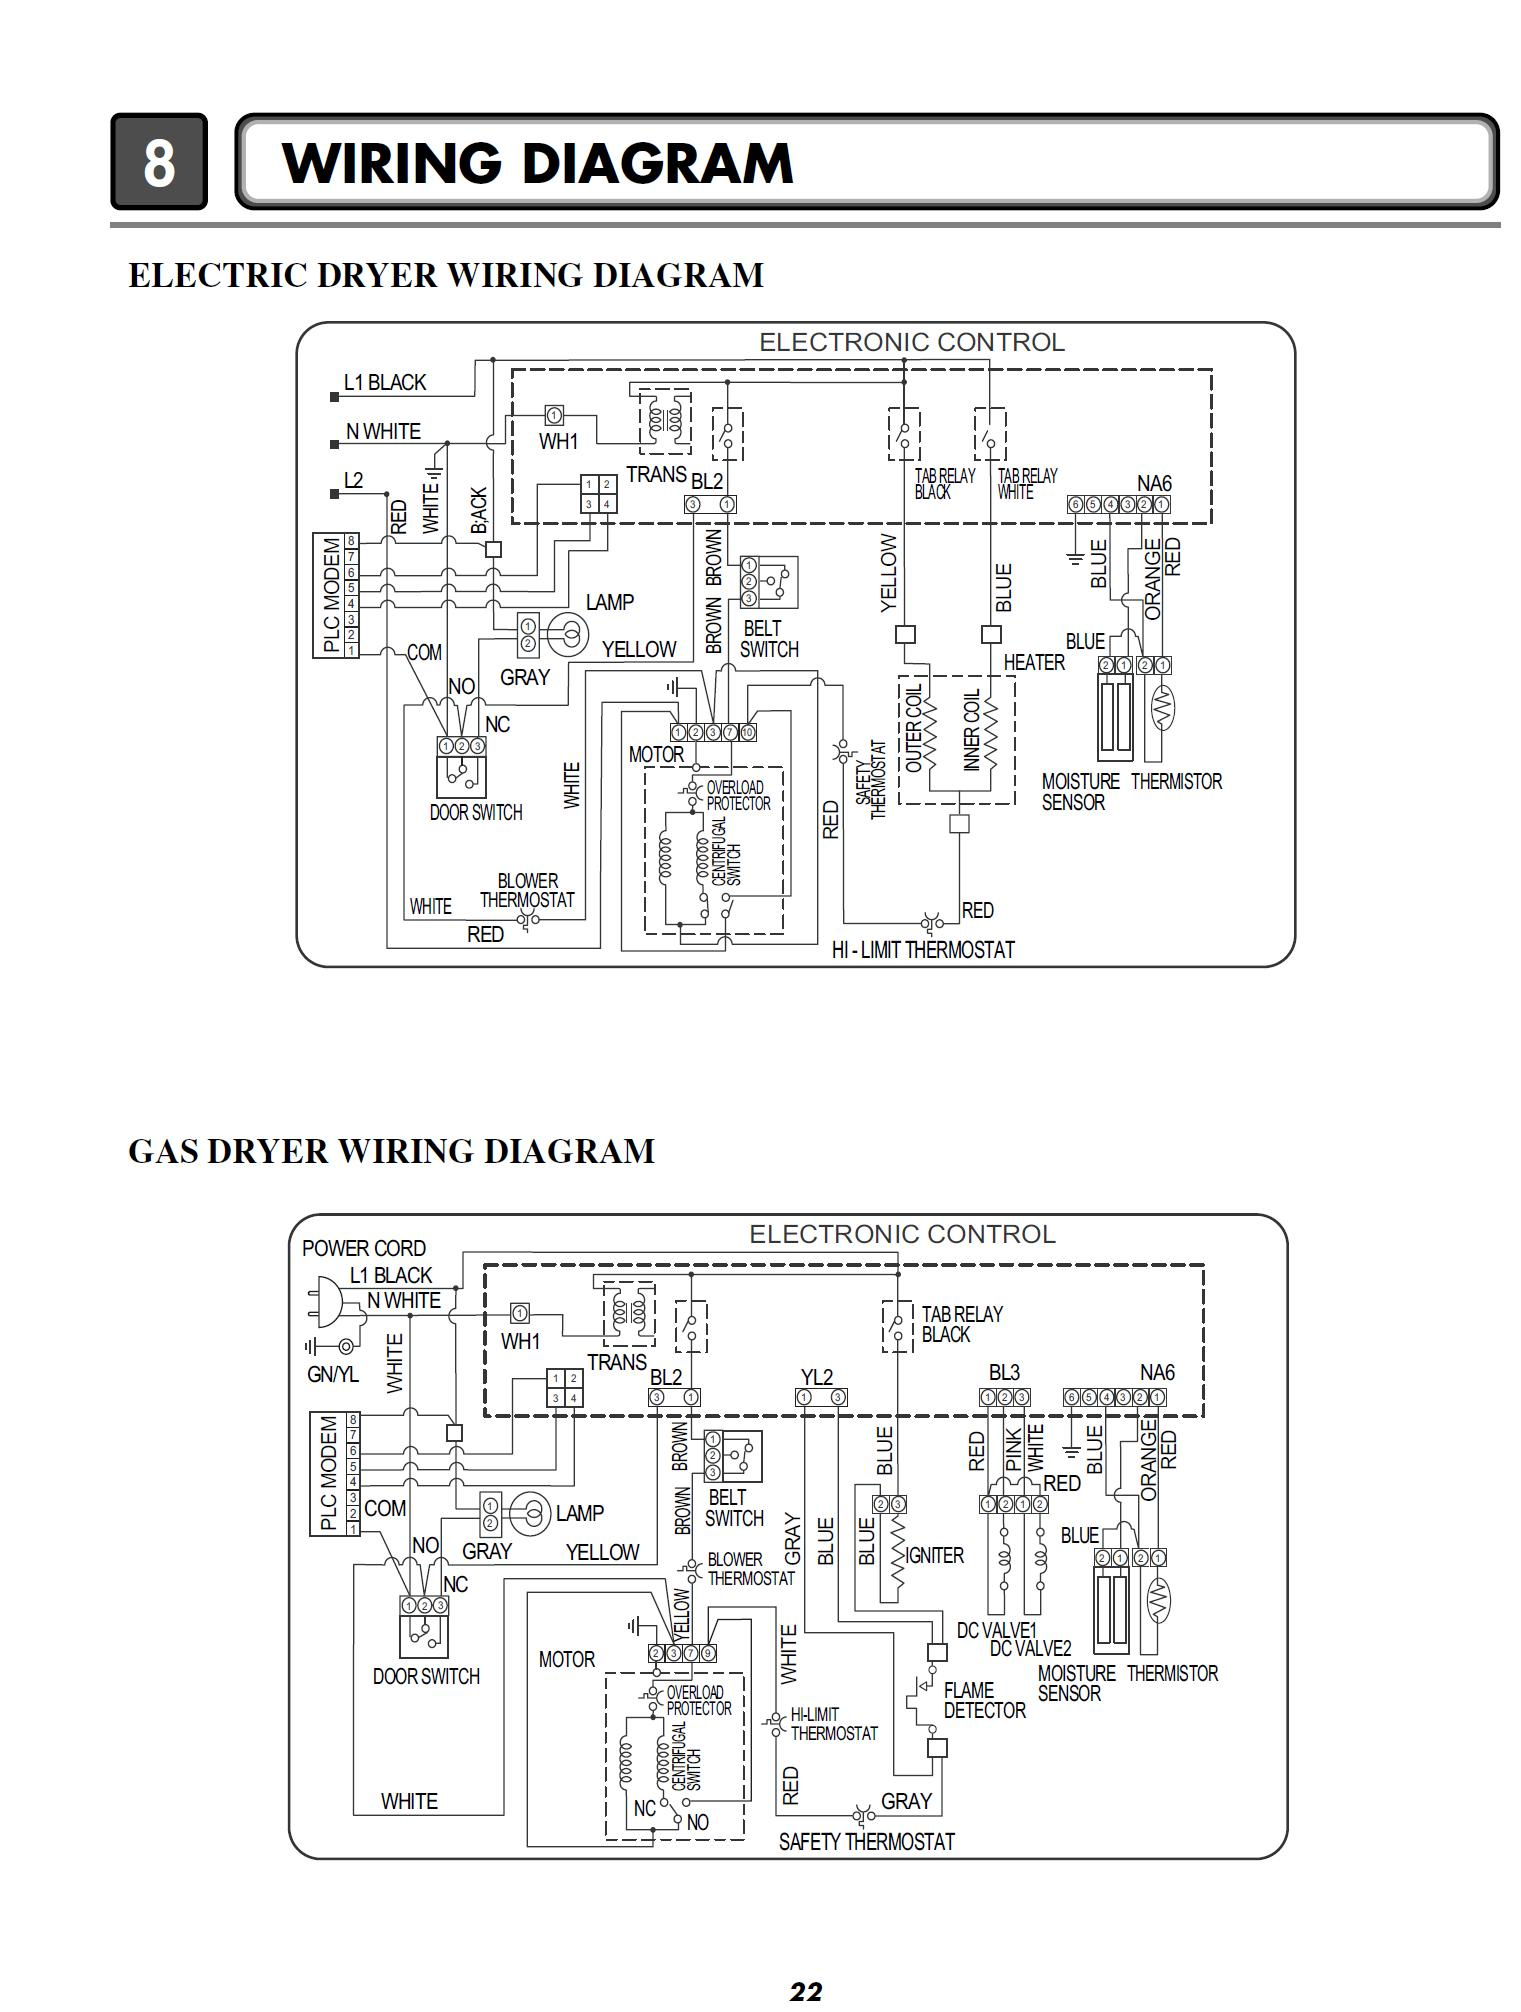 carter 250 diagram schematic all about repair and wiring collections carter diagram schematic lg tromm wiring diagram carter electric fuel pump wiring diagram 201337 un